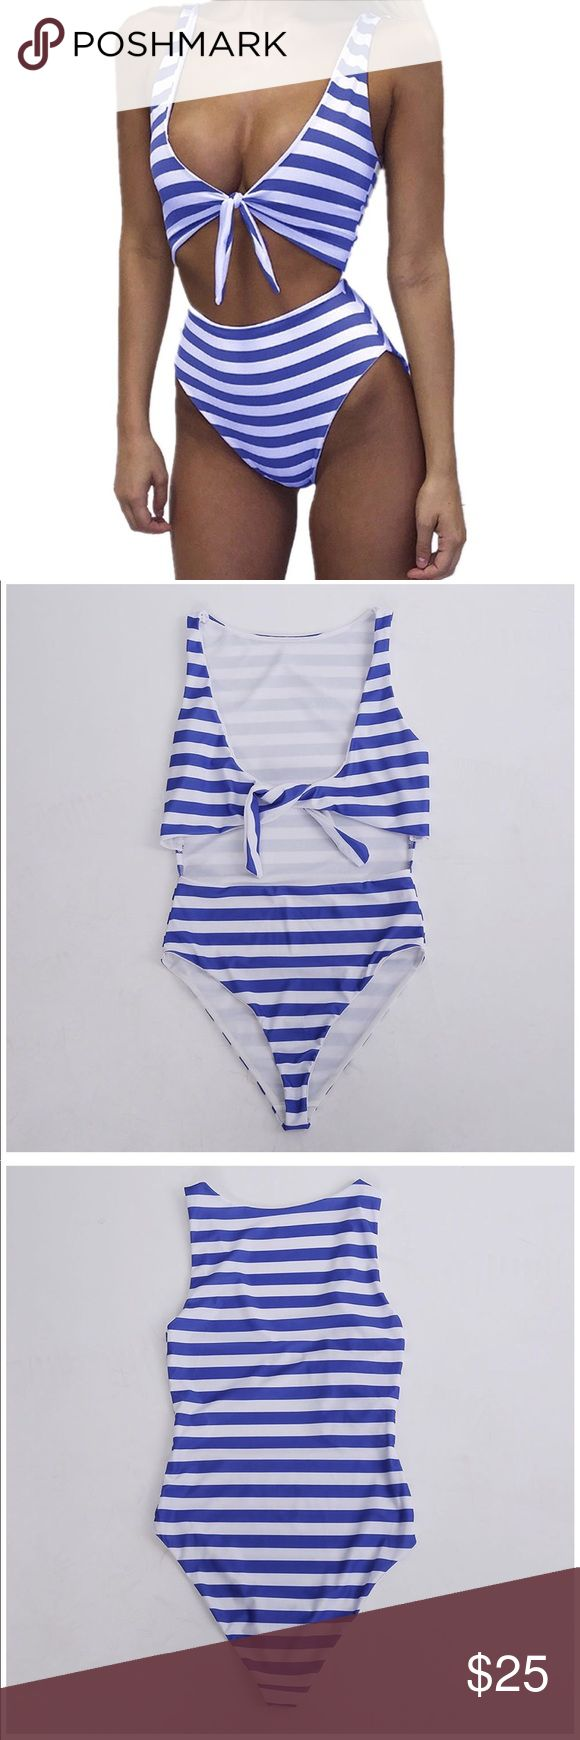 Blue Striped High Waisted Swimsuit Blue Striped High Waisted Swimsuit  Size: XL (runs small, please see size chart) One Piece New Without Tags Never Used  💋Listed as Fashion Nova for Exposure💋 Fashion Nova Swim One Pieces